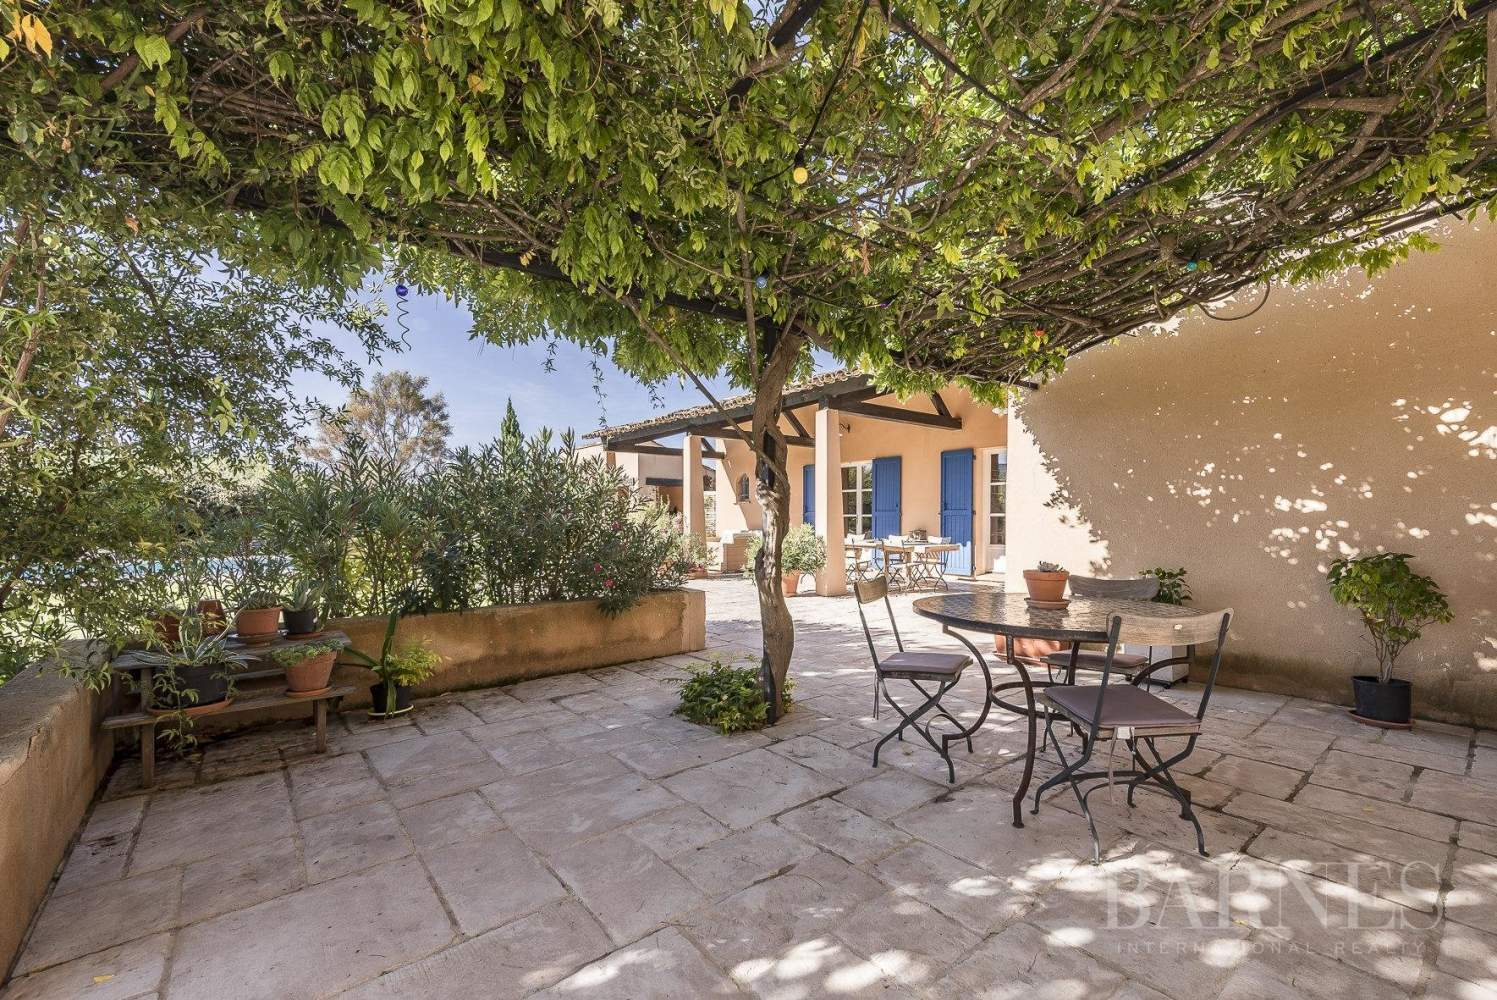 House for sale - East Aix-en-Provence - swimming pool picture 8